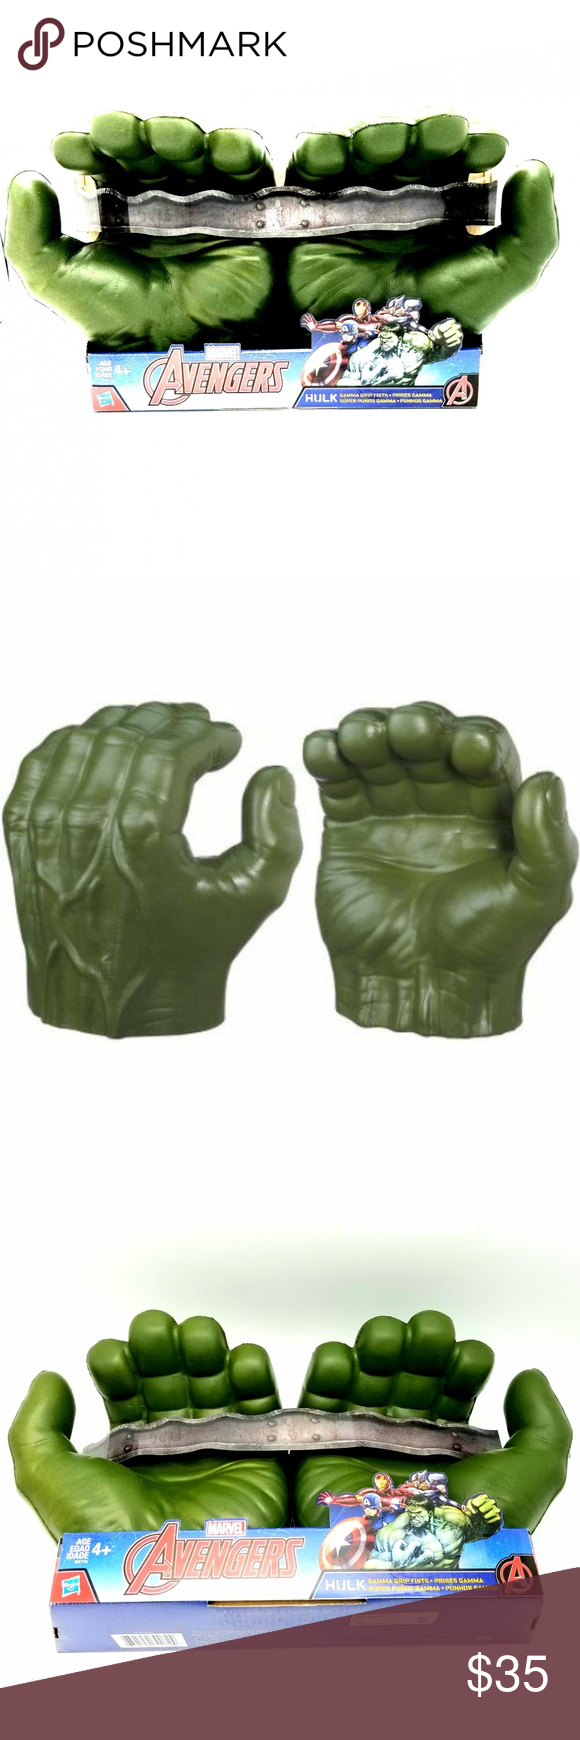 Incredible Hulk Hands Gloves Marvel Avengers Gamma Grip Fists Smash Costume Toy